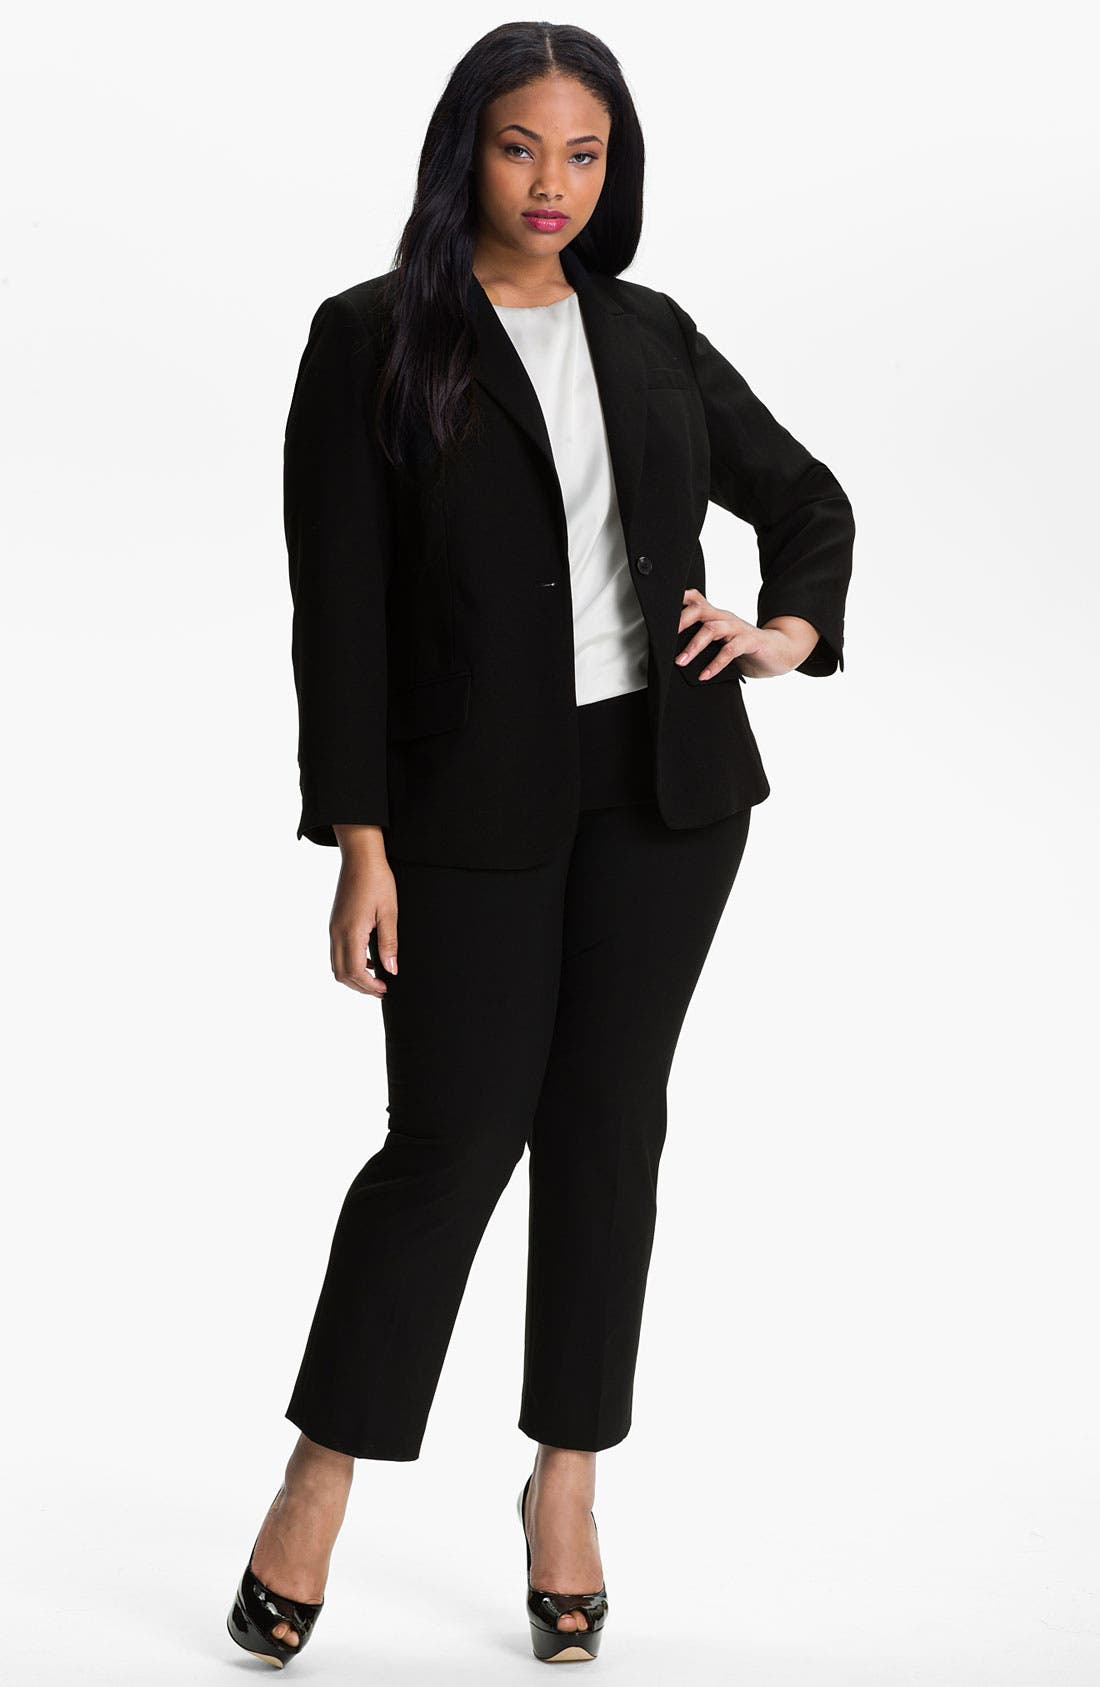 Alternate Image 1 Selected - Vince Camuto Print Lined Blazer (Plus)